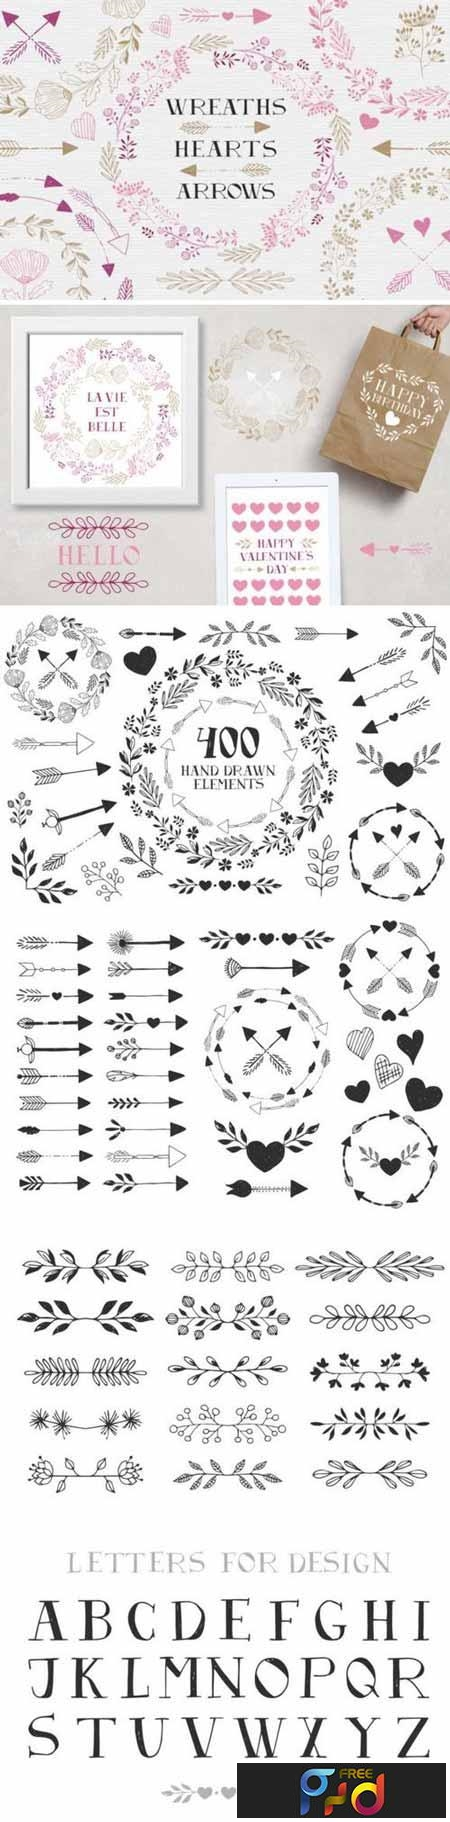 Wreaths, hearts, arrows - EPS & PNG 1186313 1